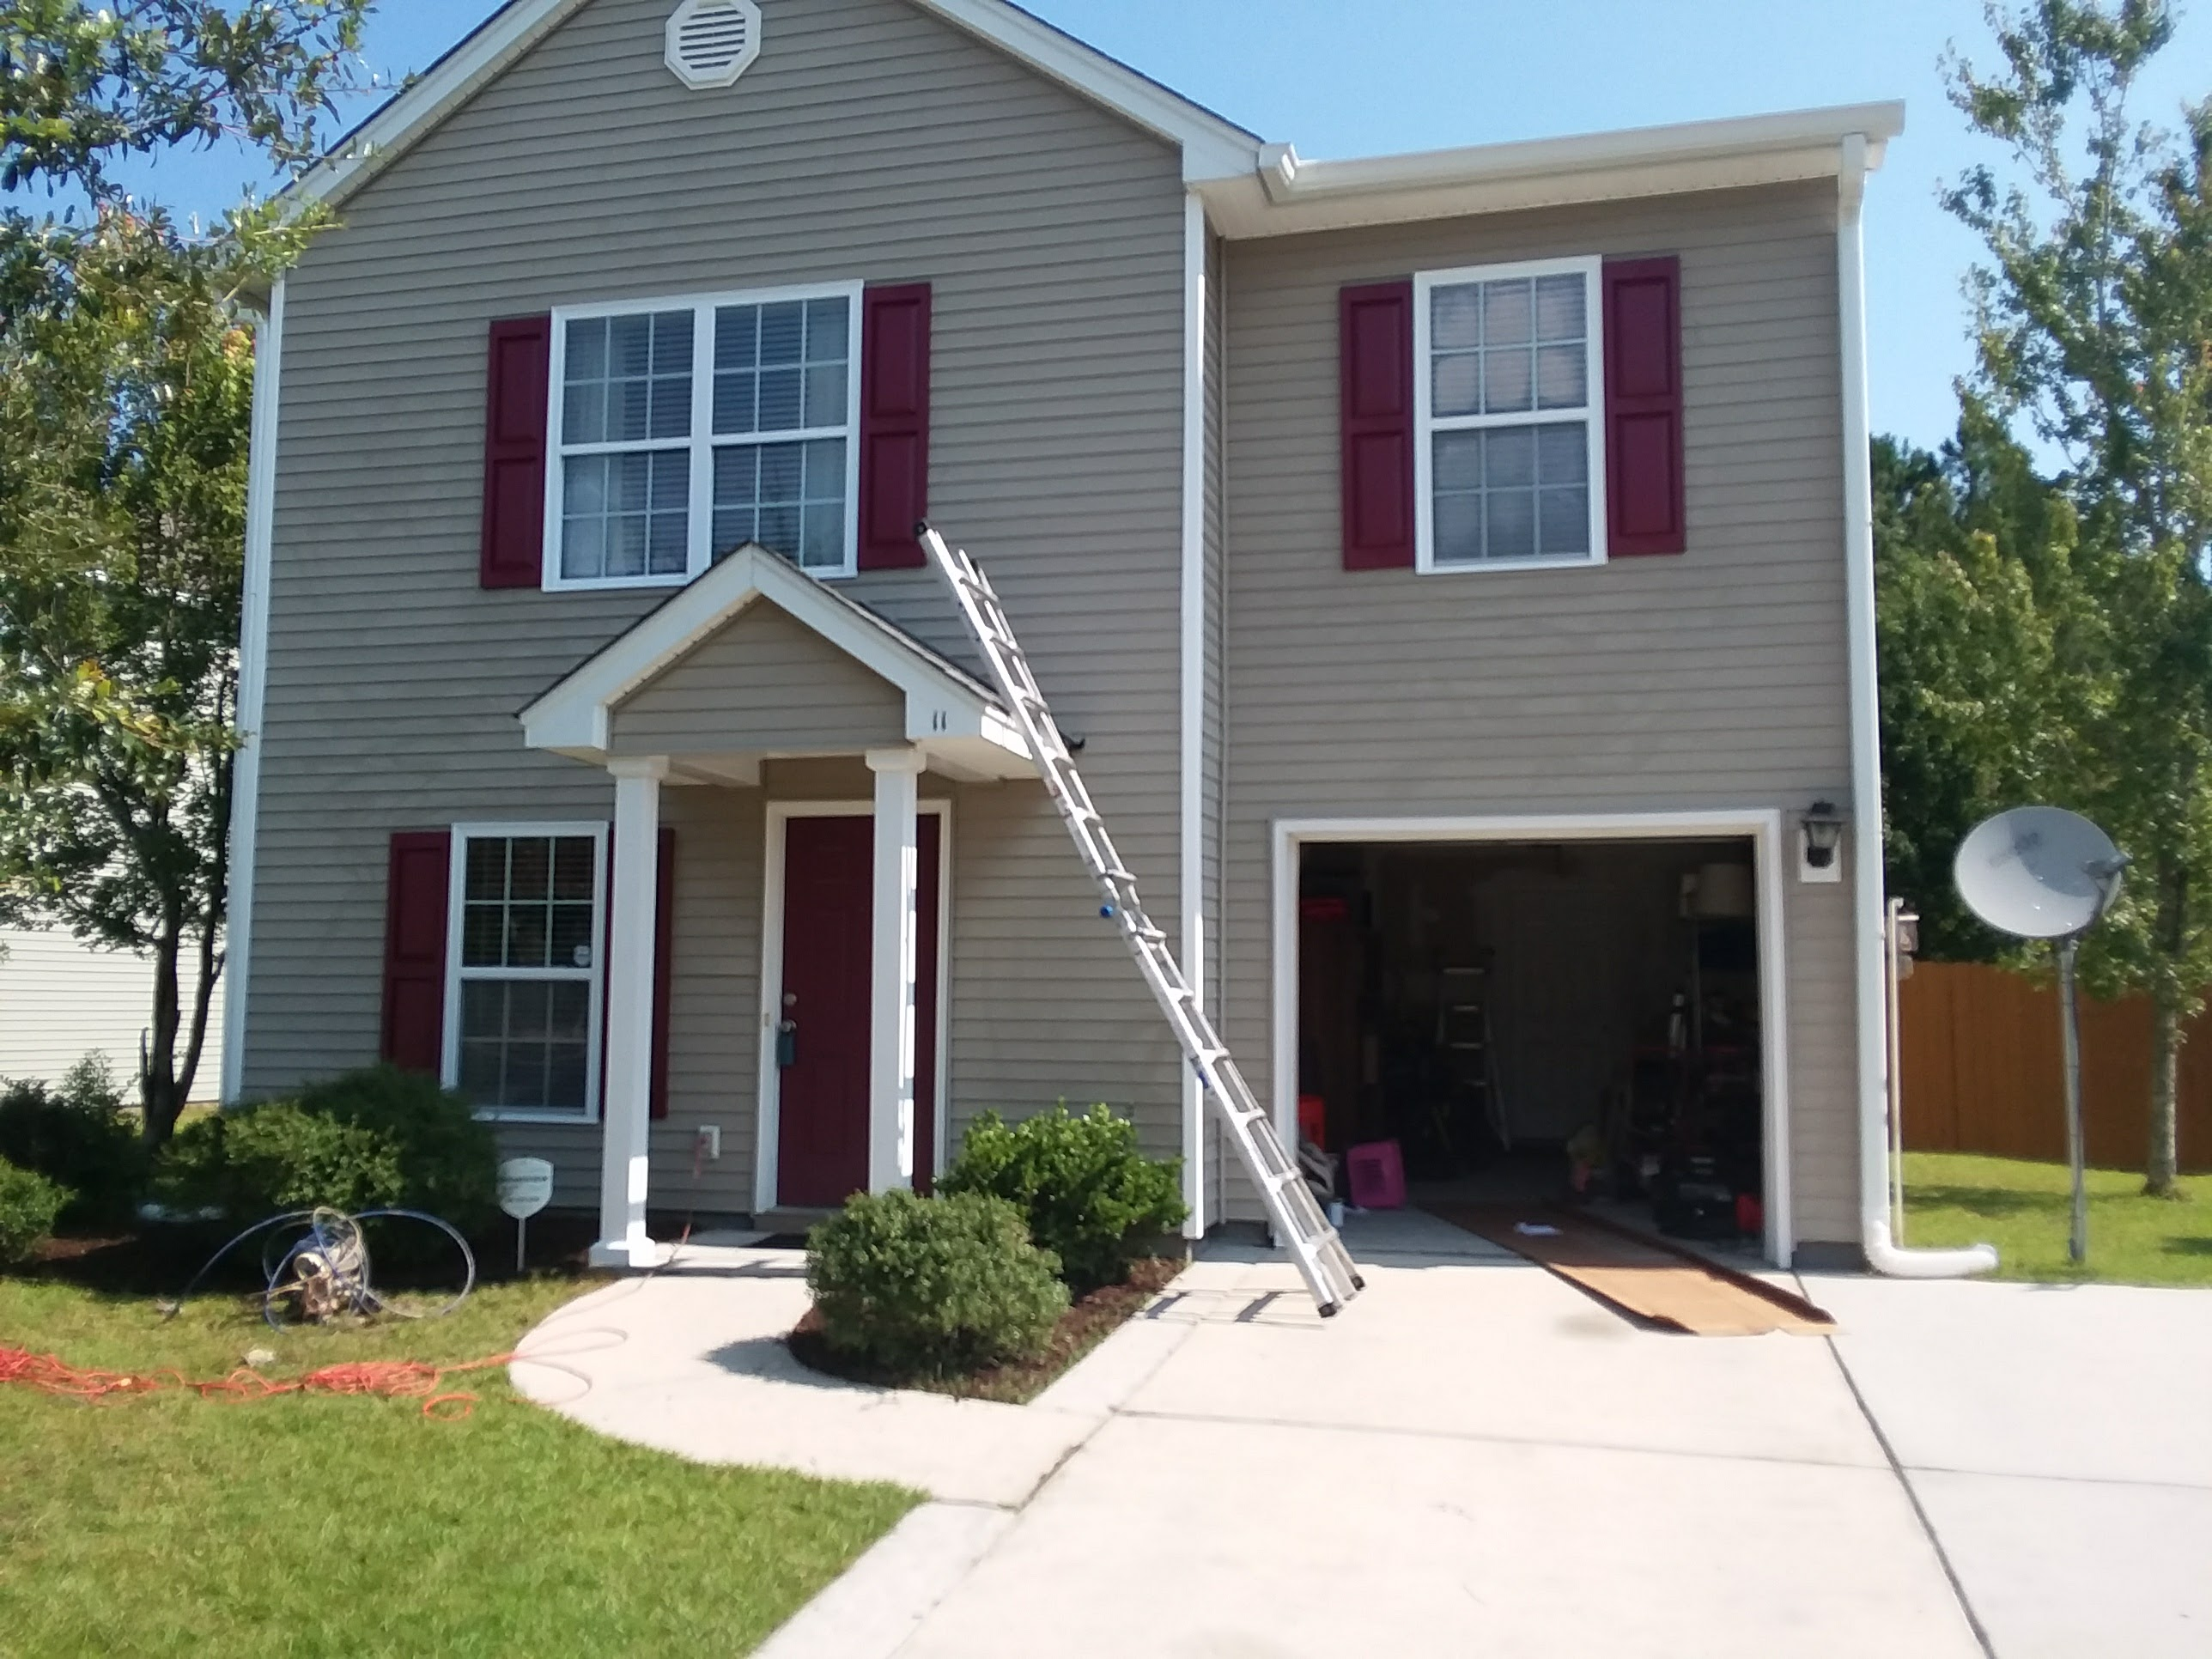 Painting window shutters exterior exterior shutters - Best spray paint for exterior shutters ...